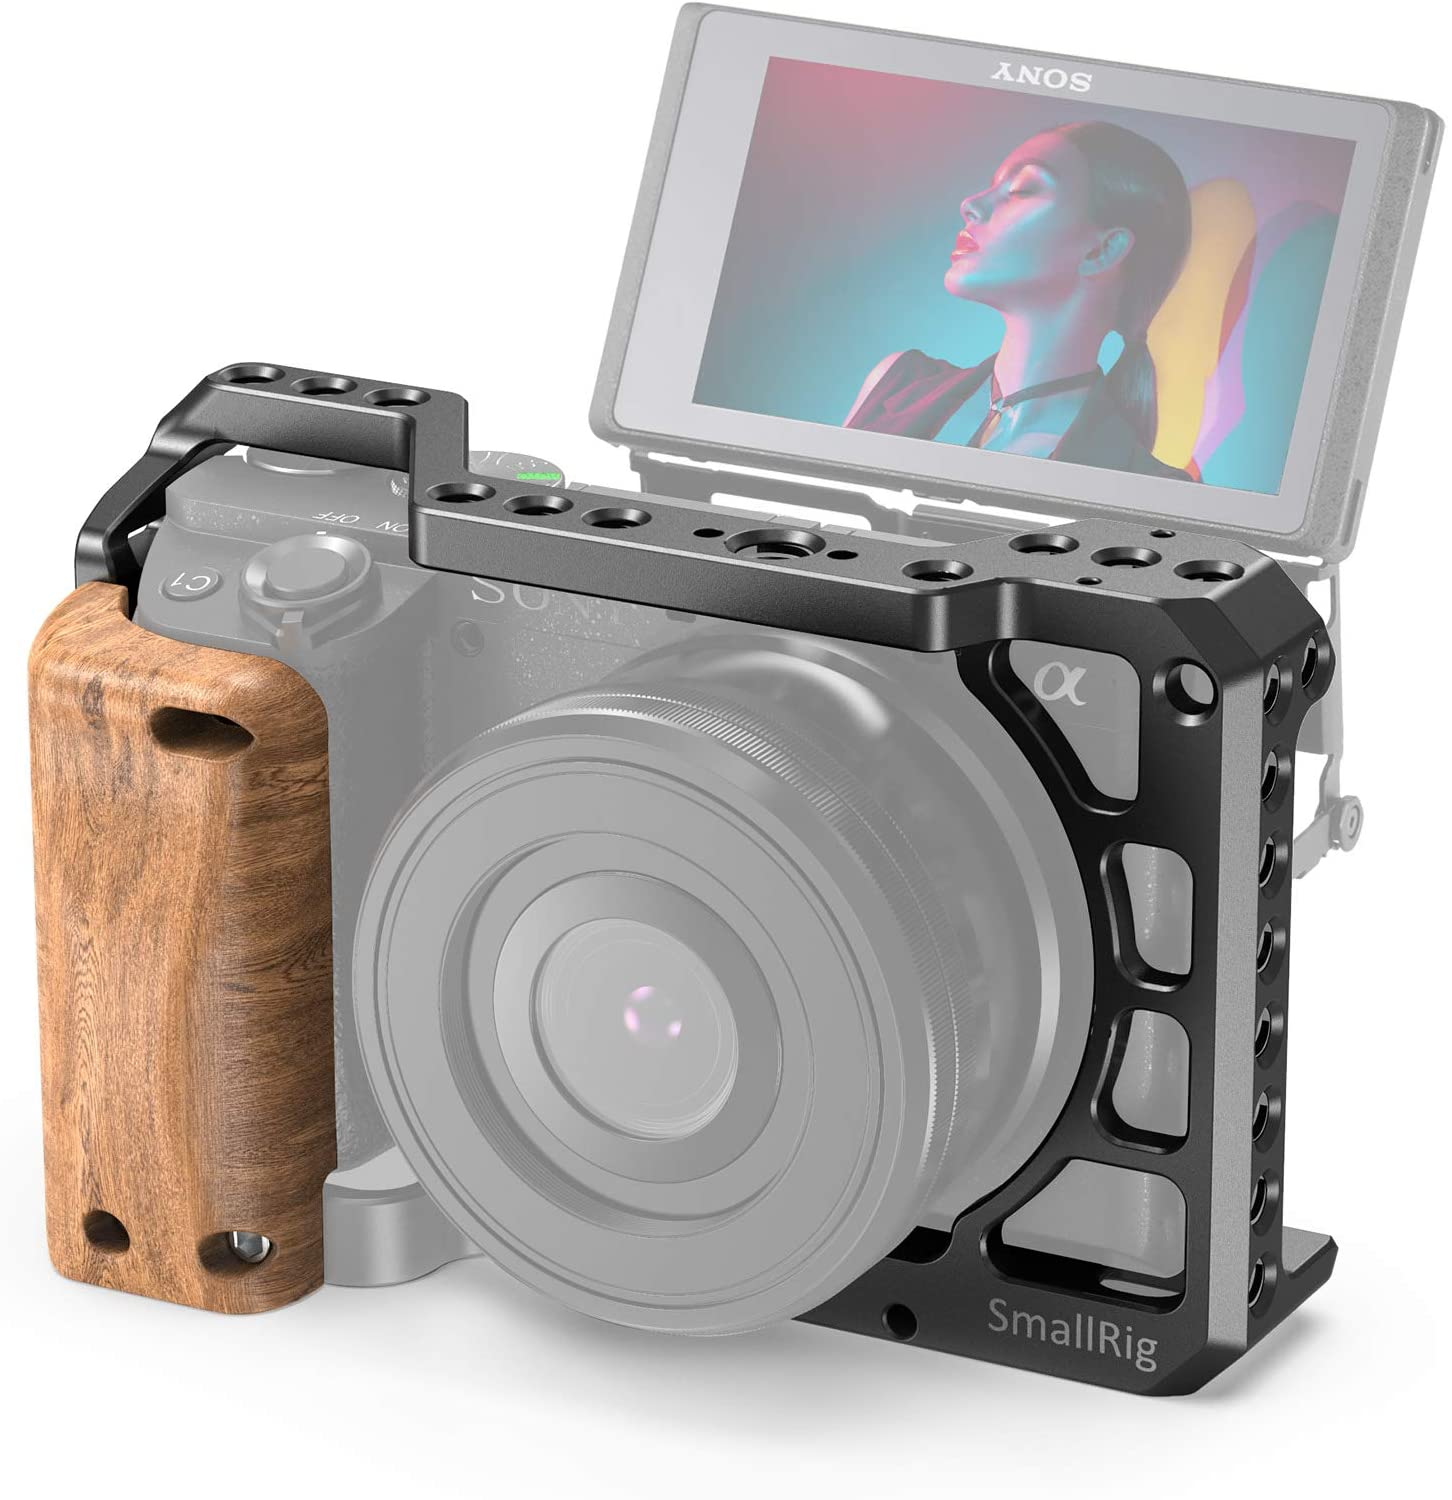 SmallRig Cage Kit with Wooden Handle Hand Grip, for Sony A6100 A6300 A6400 A6500 Camera - KCCS2705